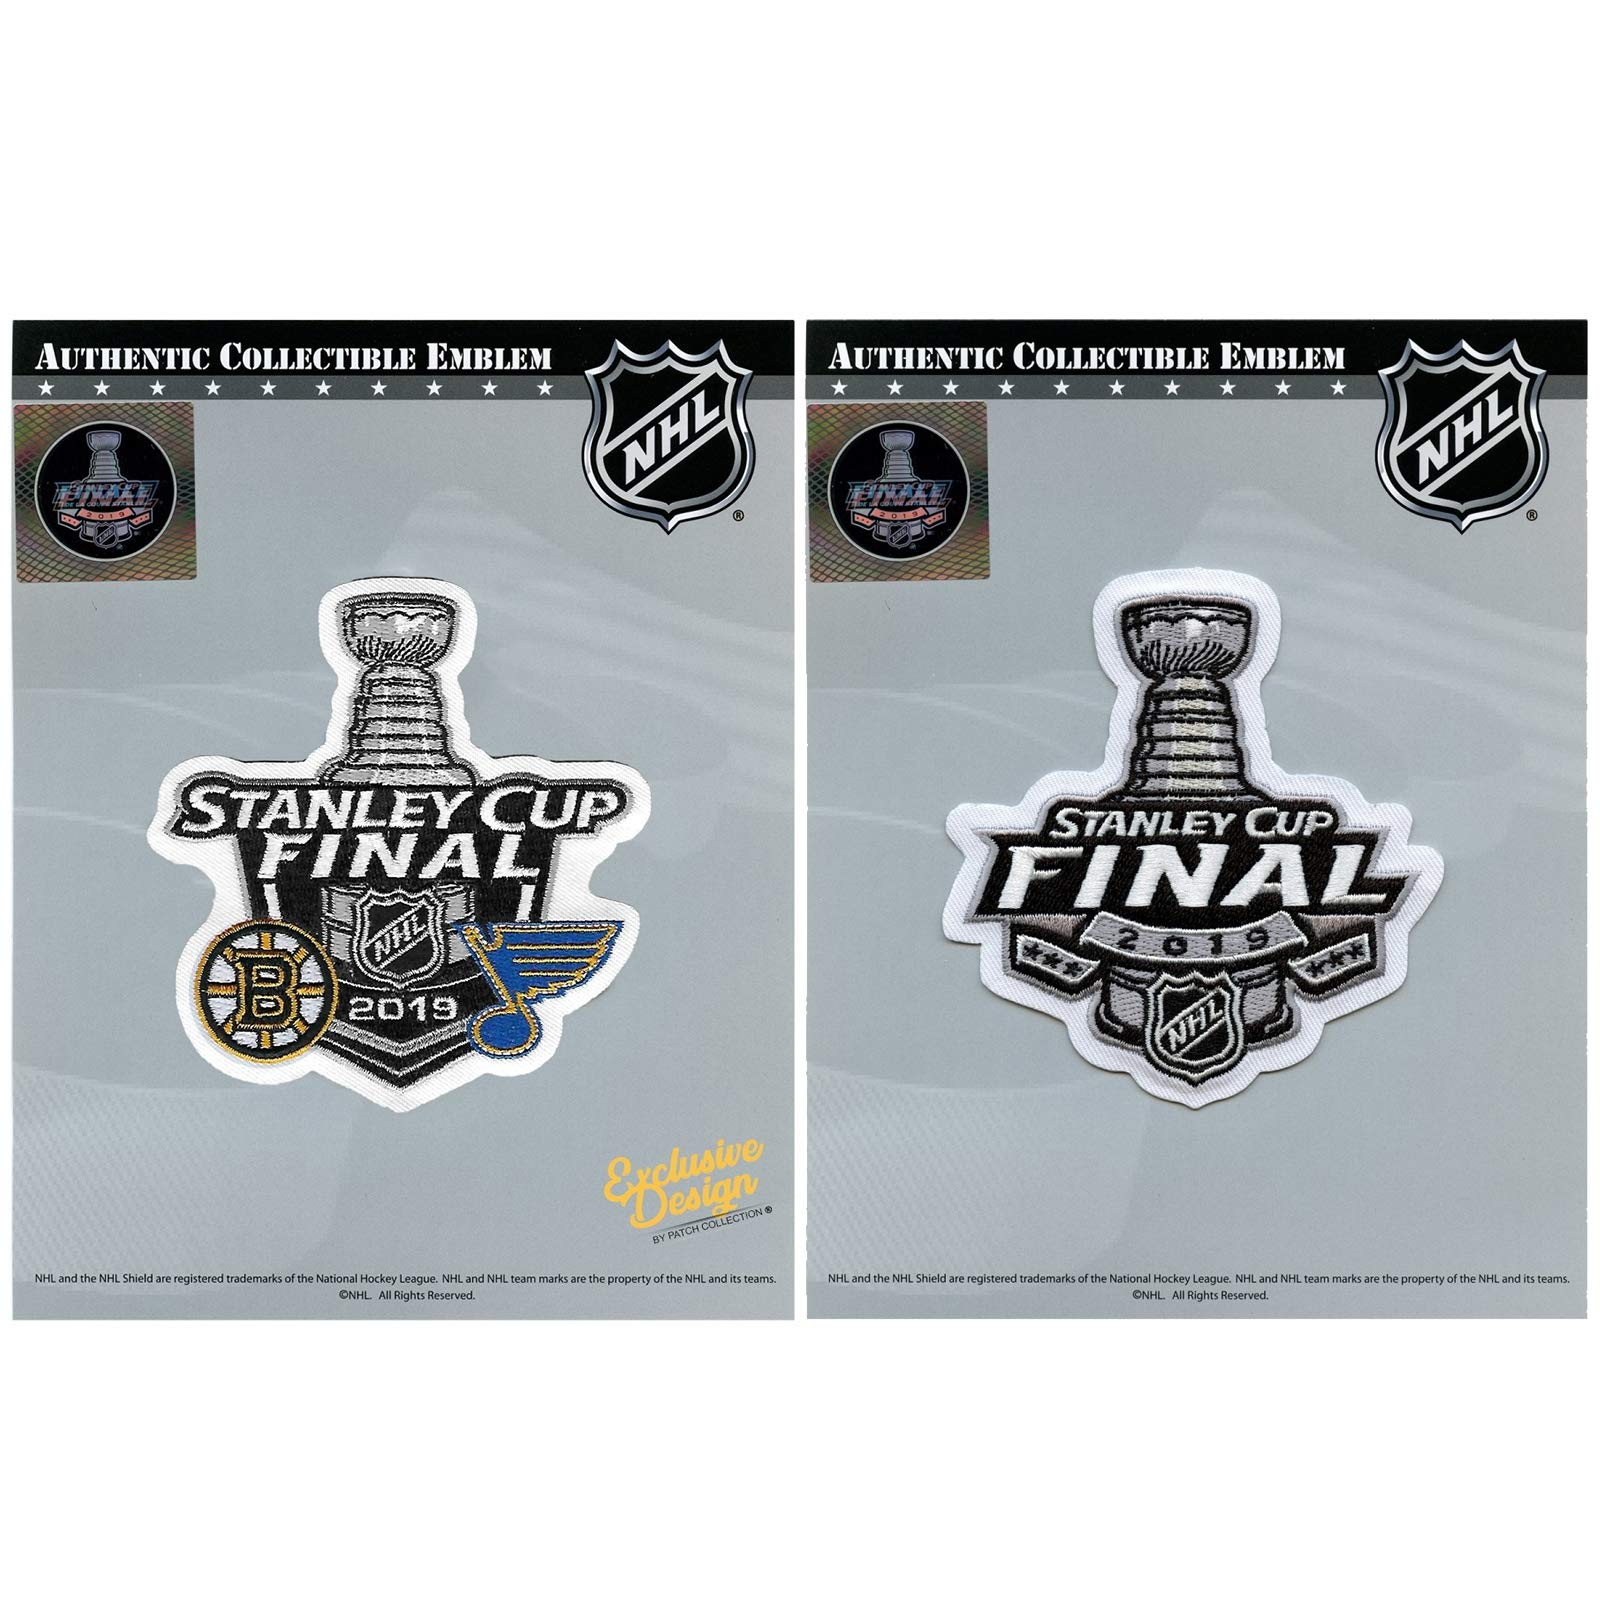 2019 Stanley Cup Final and 2019 Dueling Boston Bruins Vs Blues Patch Combo